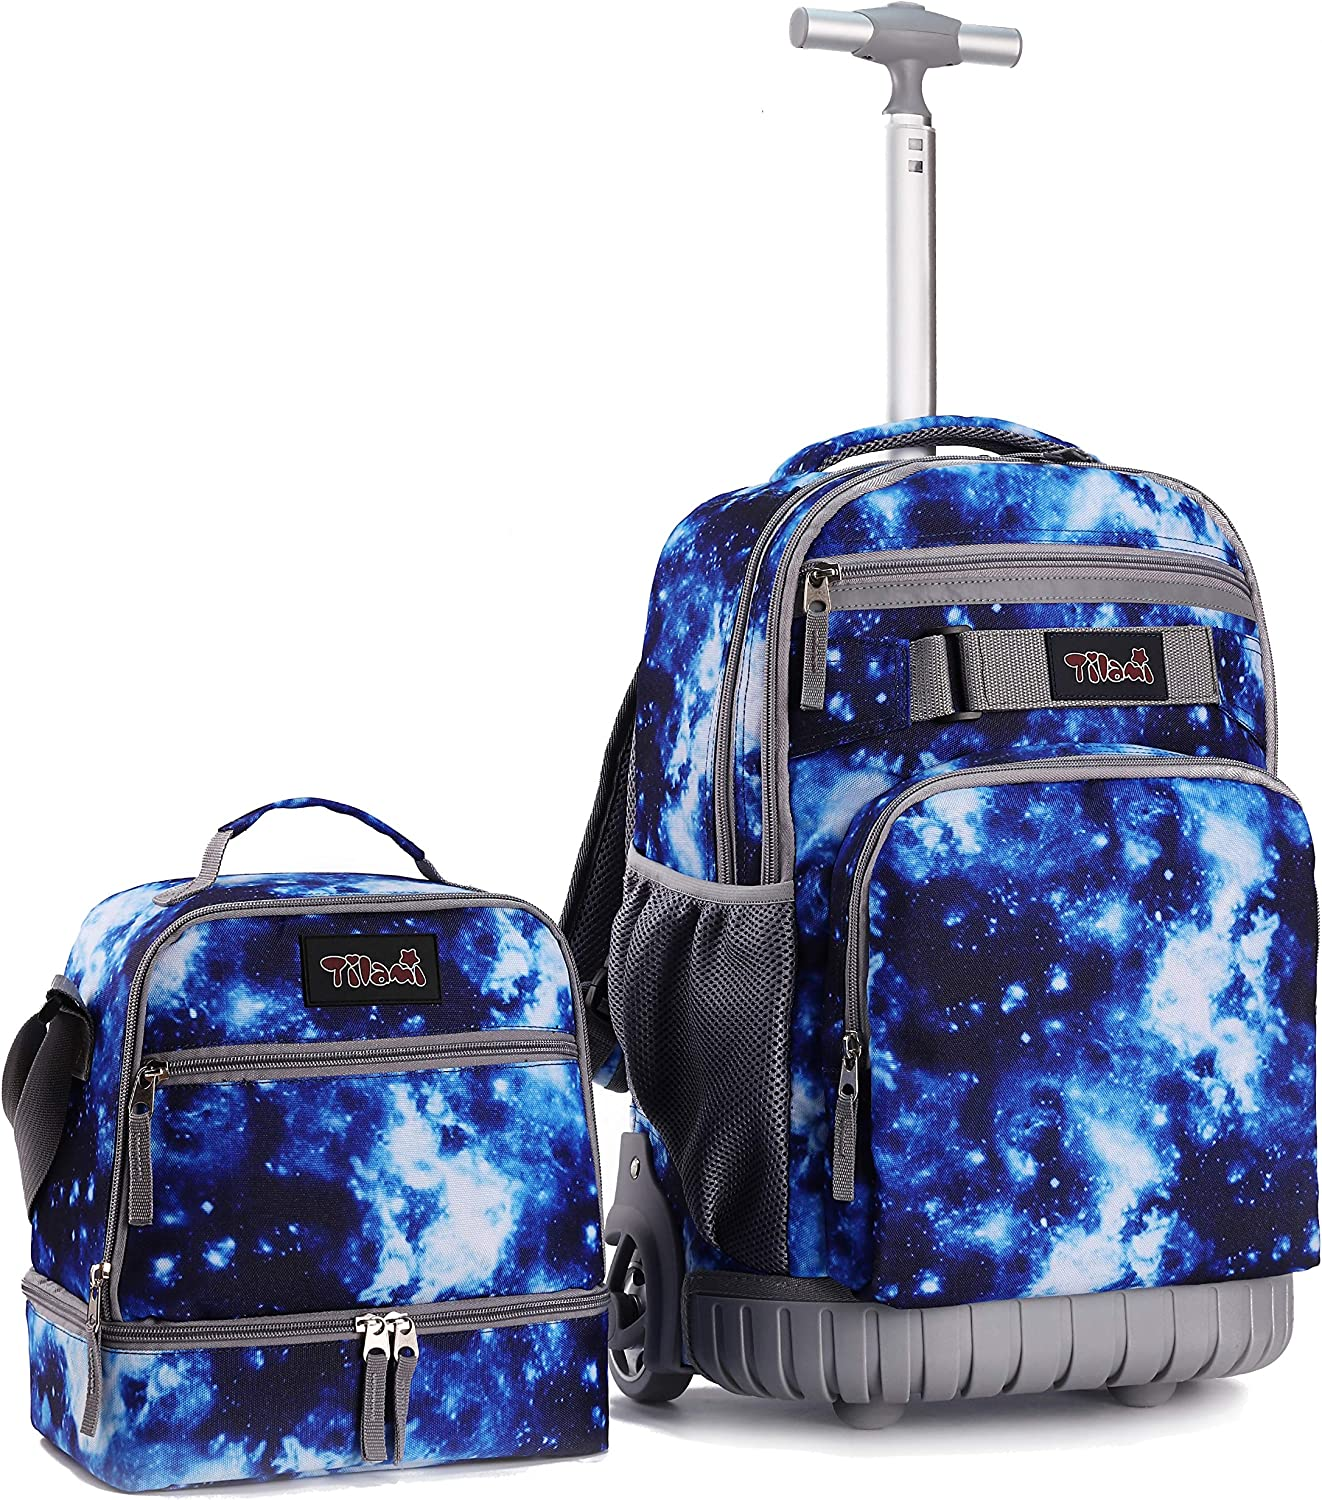 Tilami Rolling Backpack 19 inch with Lunch Bag Wheeled Laptop Backpack, Galaxy Blue